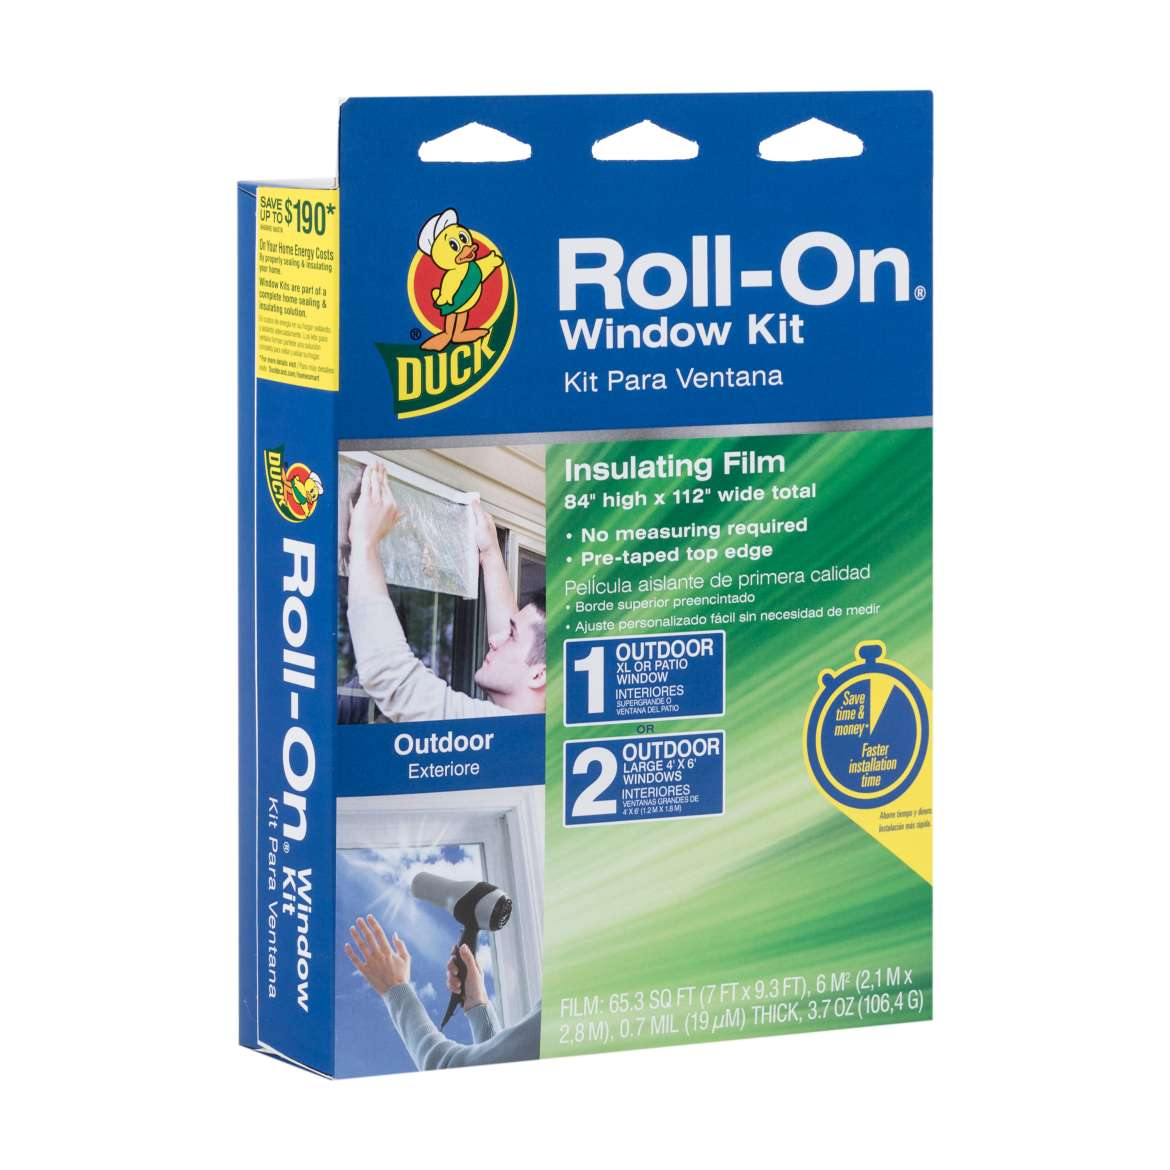 Roll on window insulation kit clear 84in x 112in duck brand for Window insulation kit